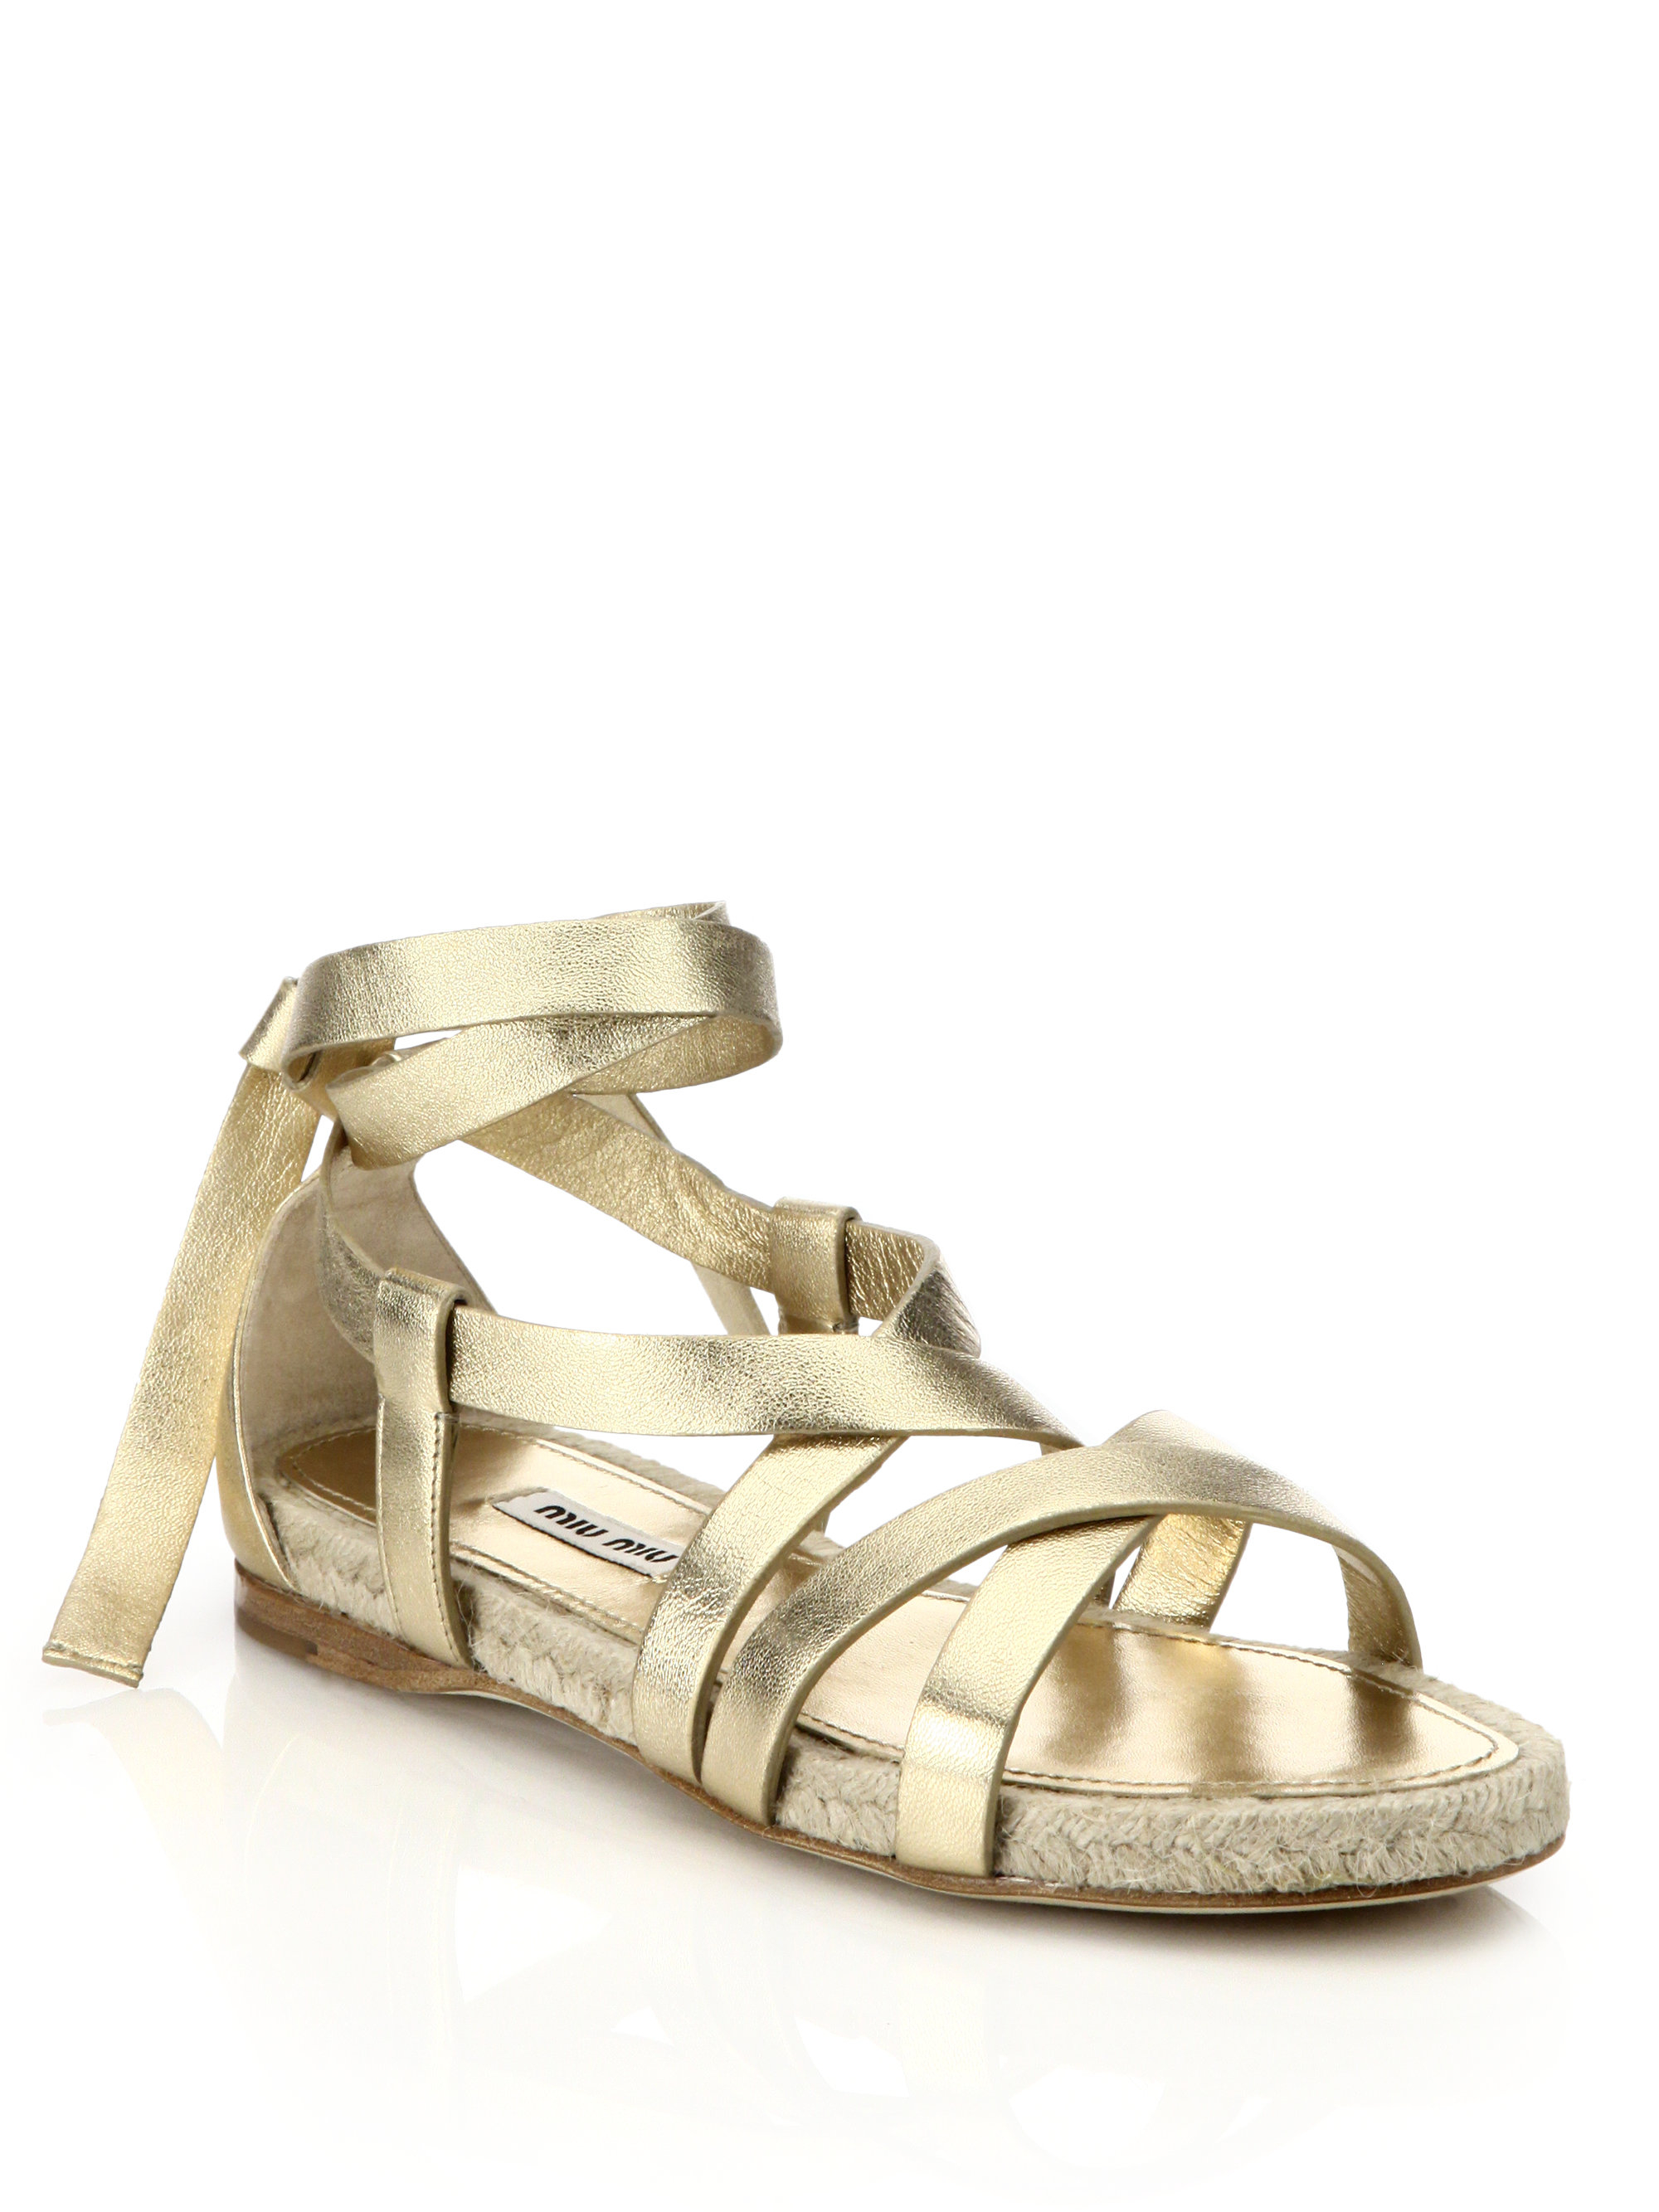 261f47b60f2 Lyst - Miu Miu Metallic Leather Ankle-tie Espadrille Sandals in Metallic